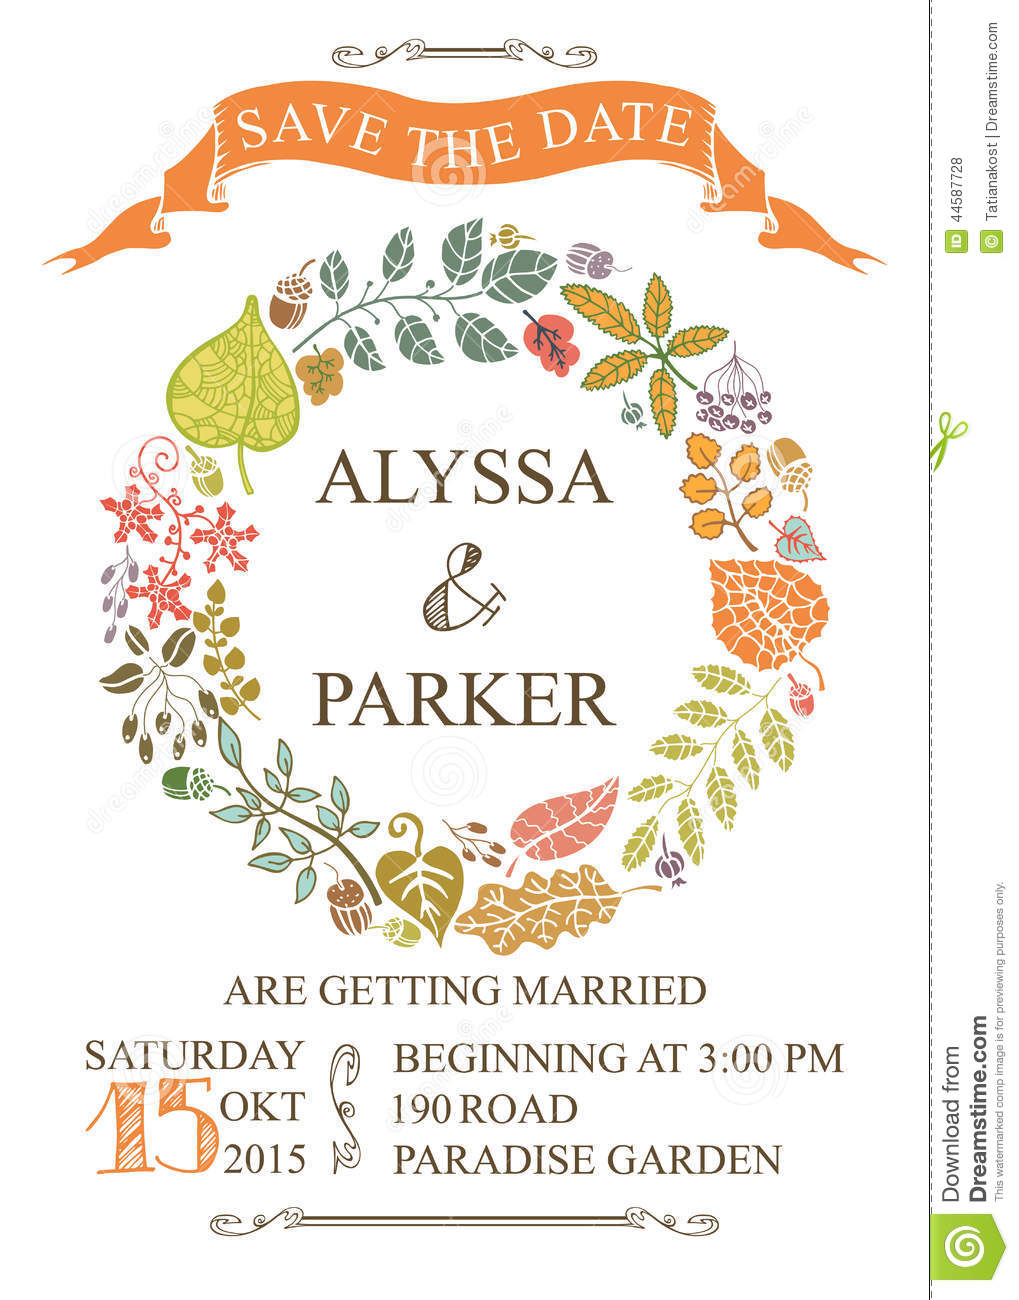 Autumn wedding save date card with leaves wreath stock for Free vintage save the date templates